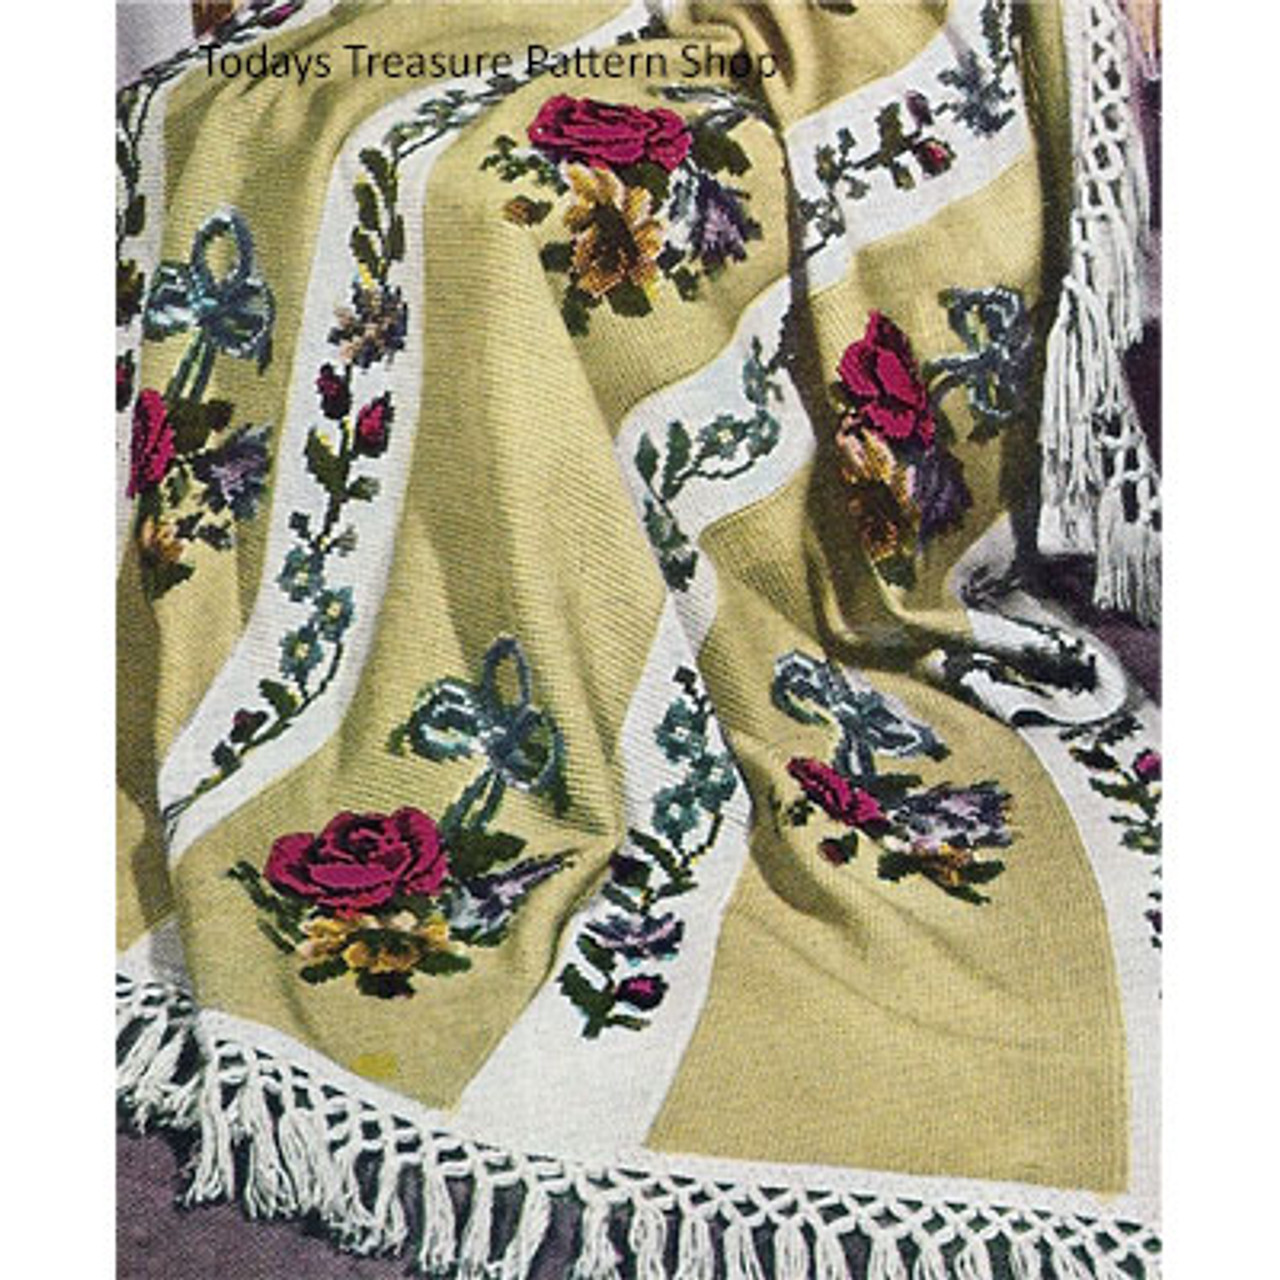 Vintage Crochet Afghan Pattern with Rose Embroidery